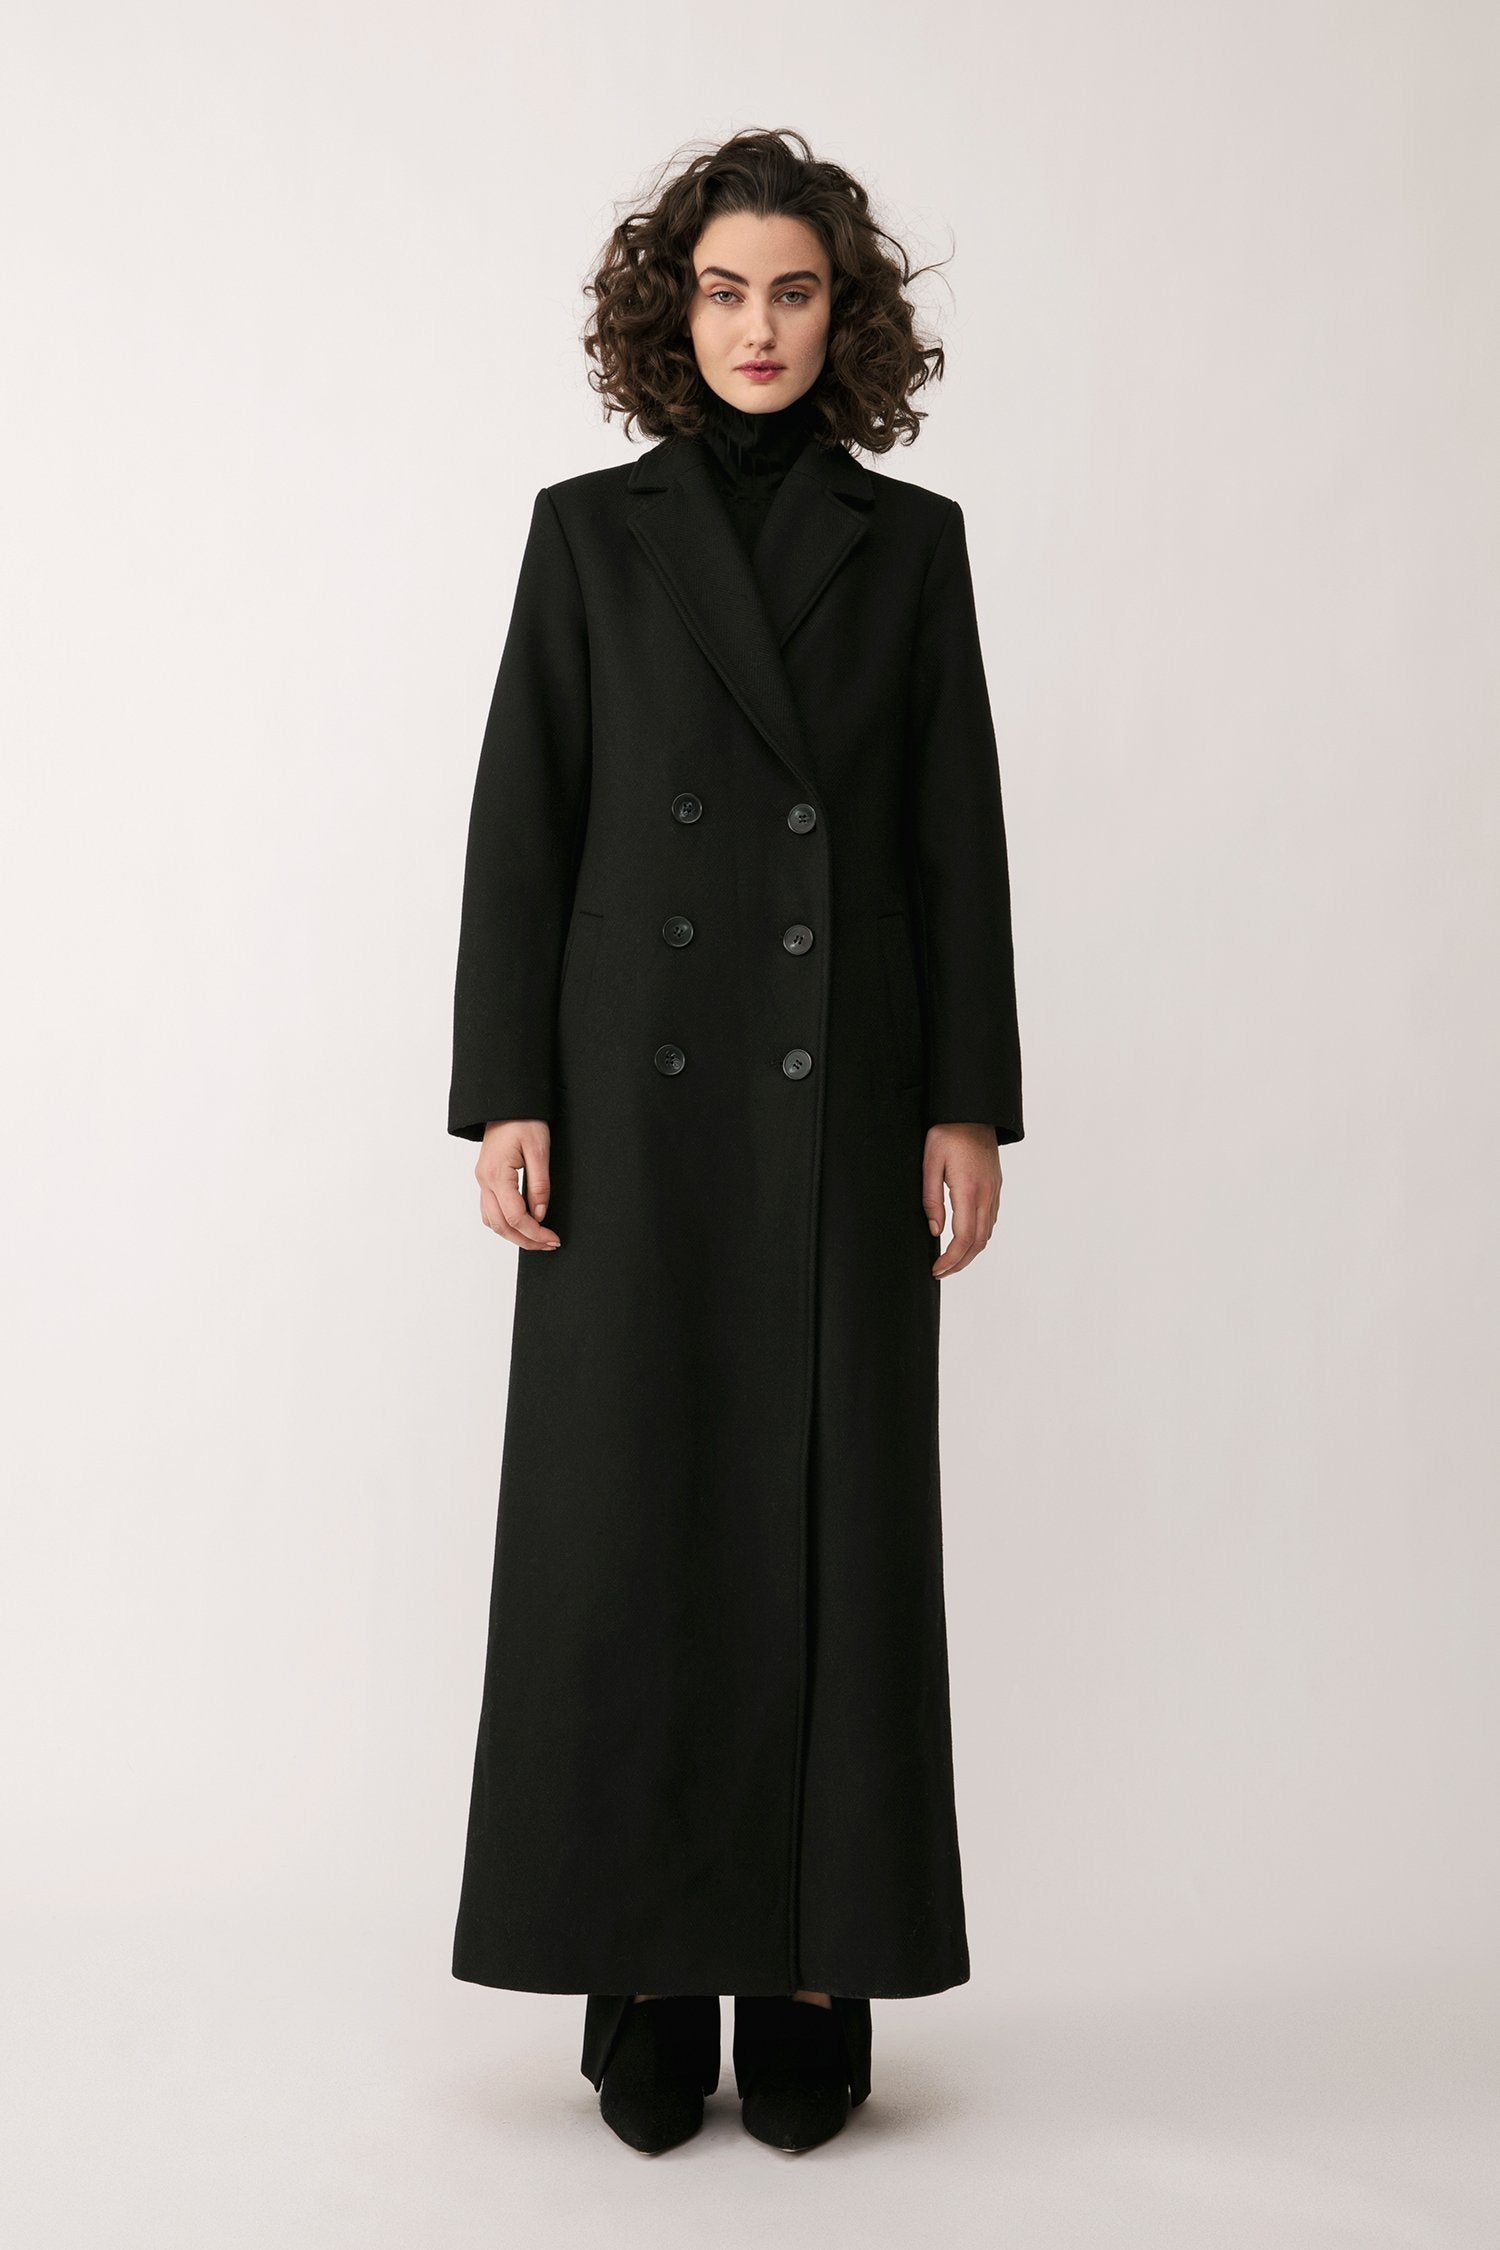 WILLIAMS COAT - BLACK Coat Stylein